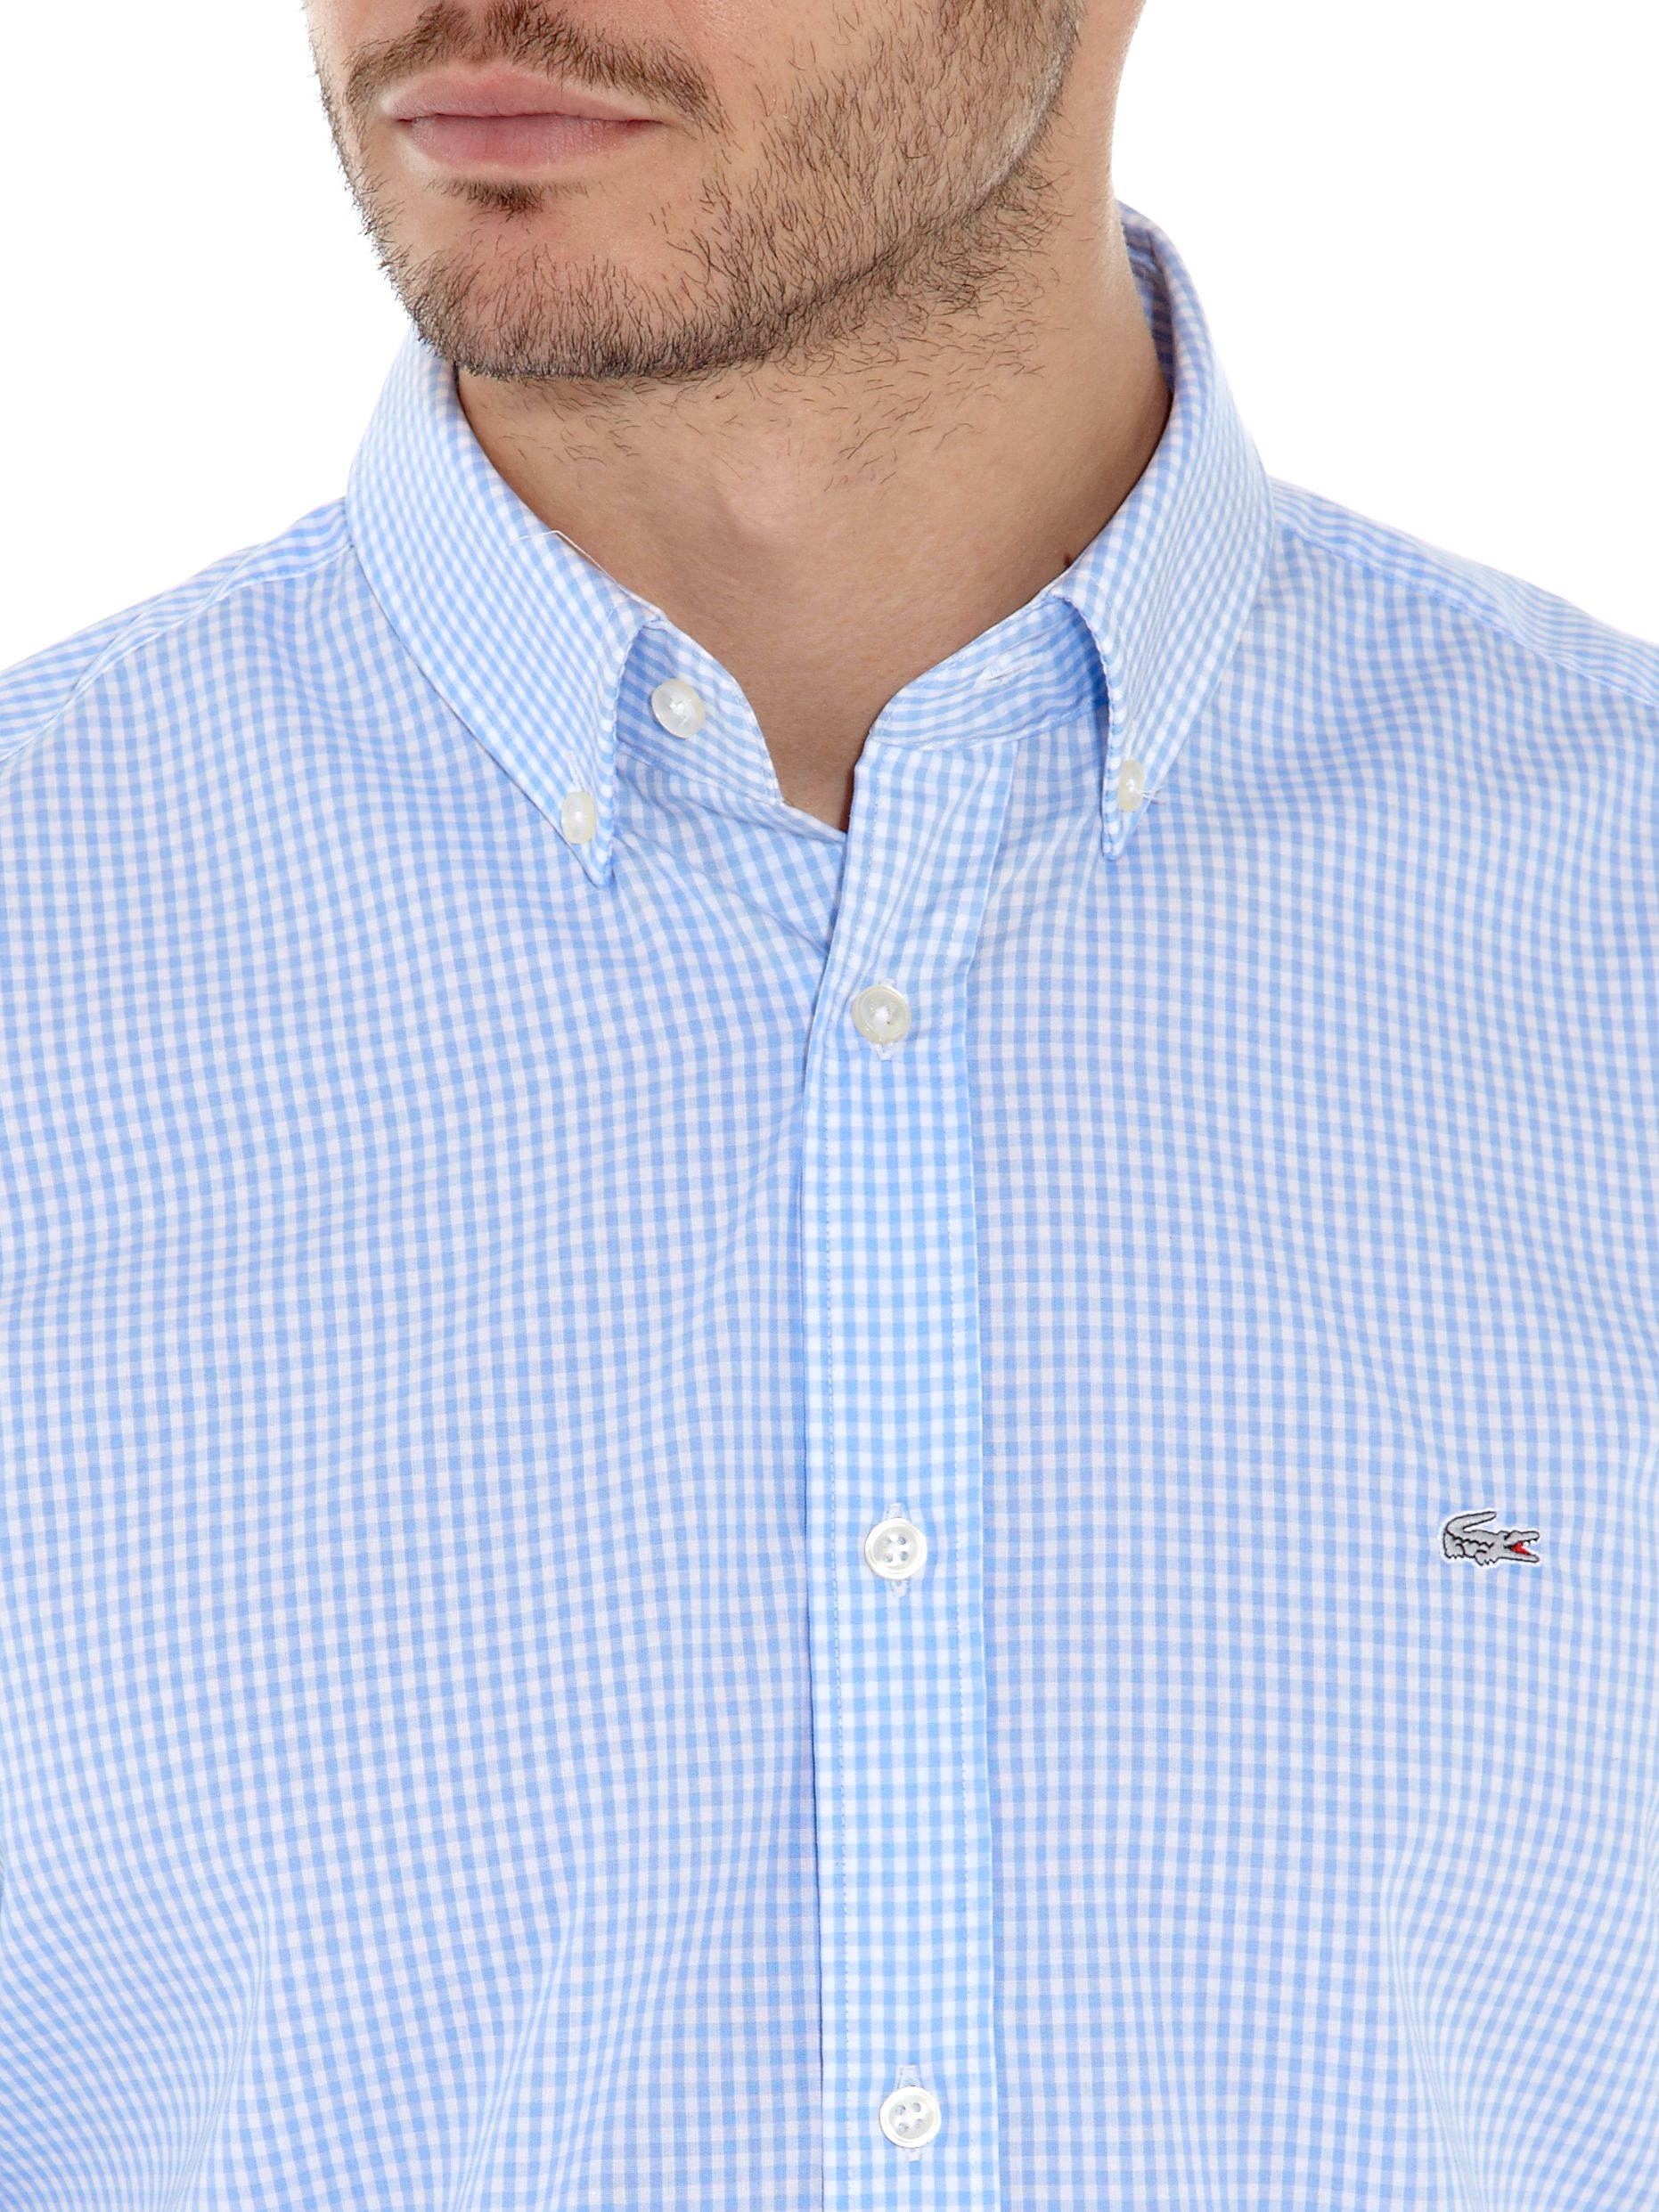 a758fda8 Lacoste Small Gingham Check Shirt in Blue for Men - Lyst